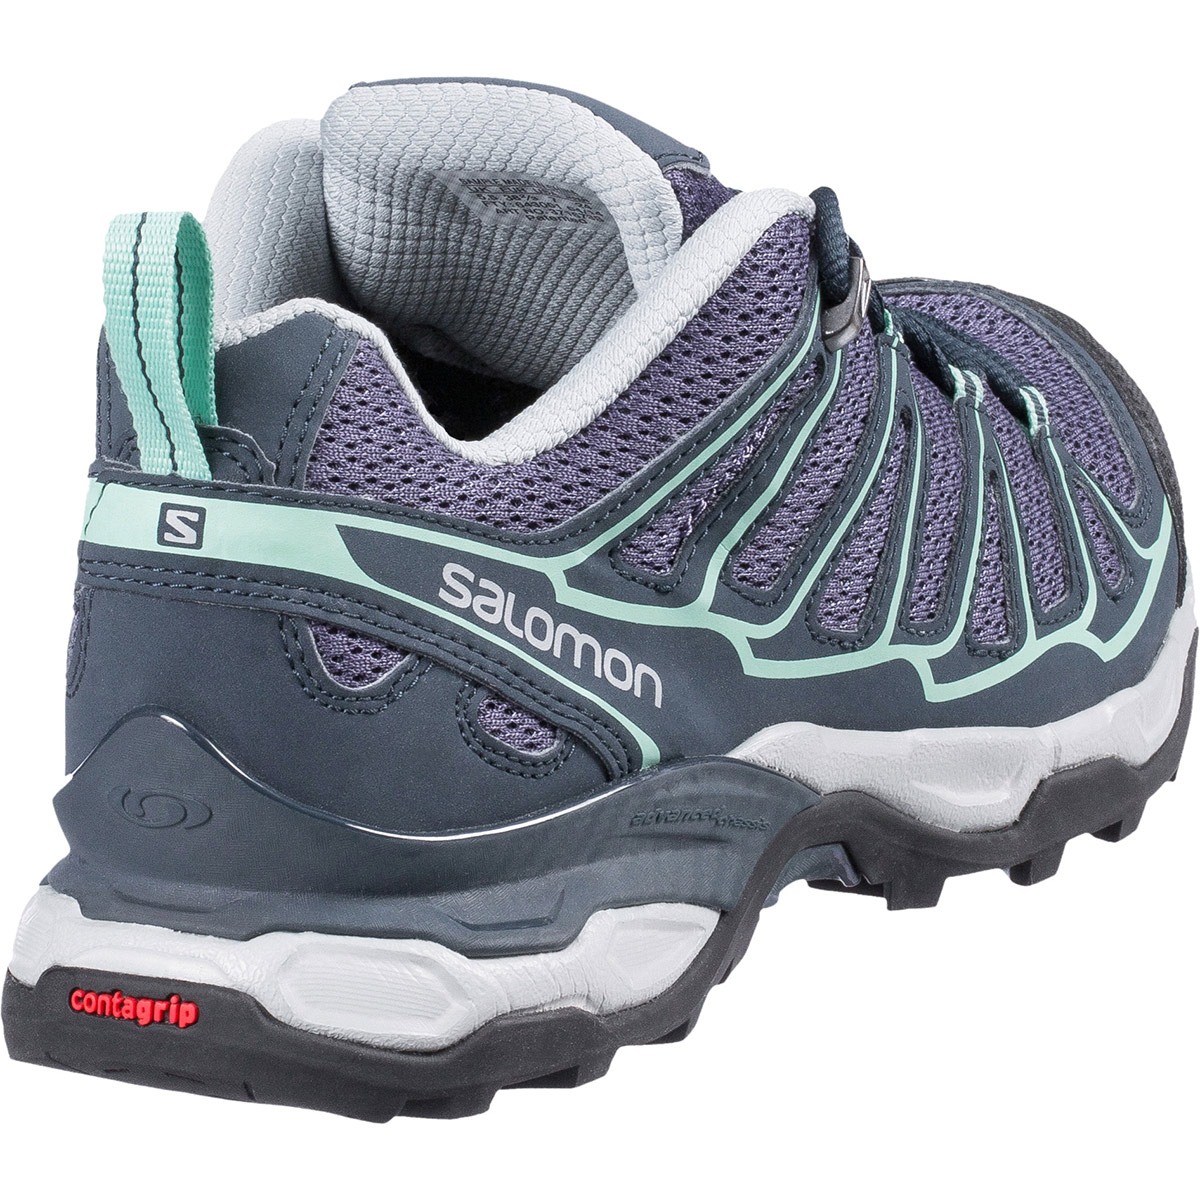 ultra prime w hiking shoes Hiking Boots